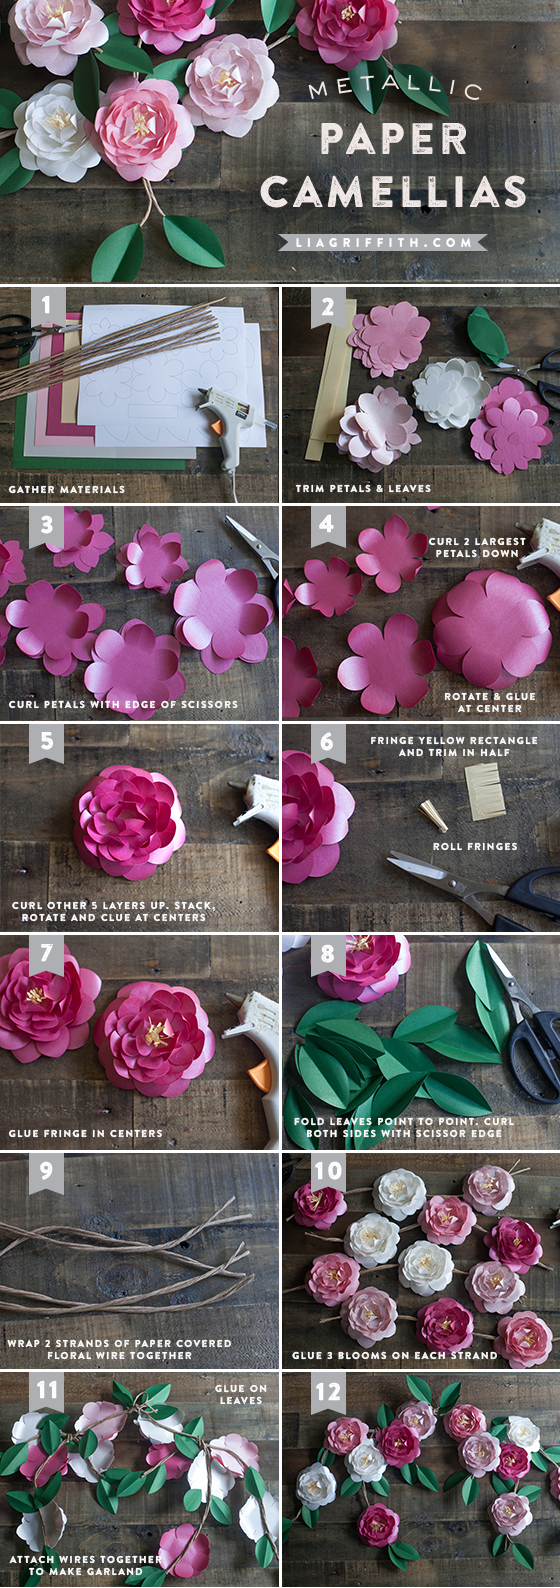 DIY paper Camellias flower tutorial